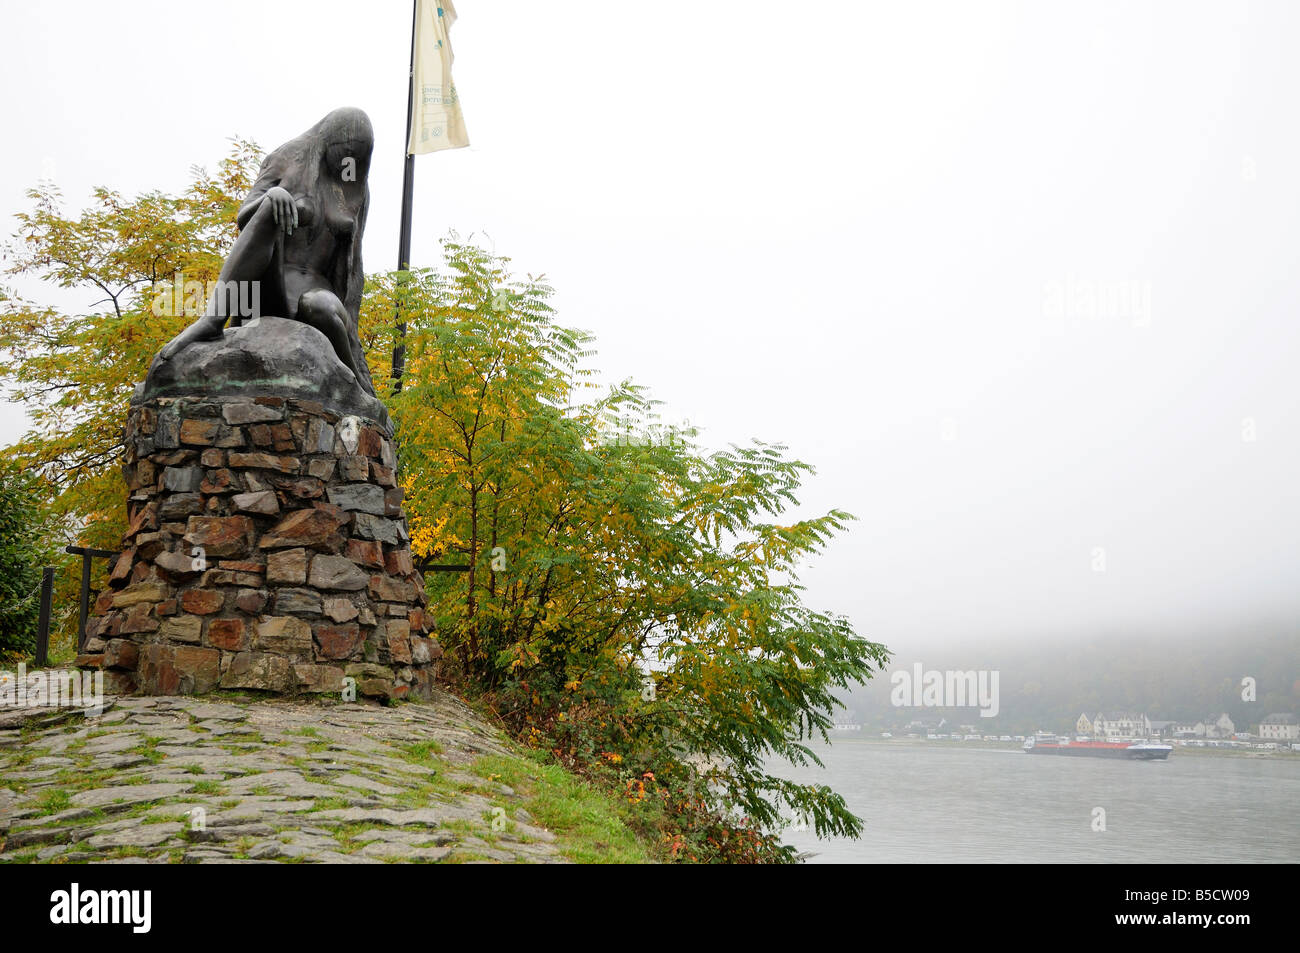 Statue of the Loreley in fog, Rhine river, Germany Stock Photo